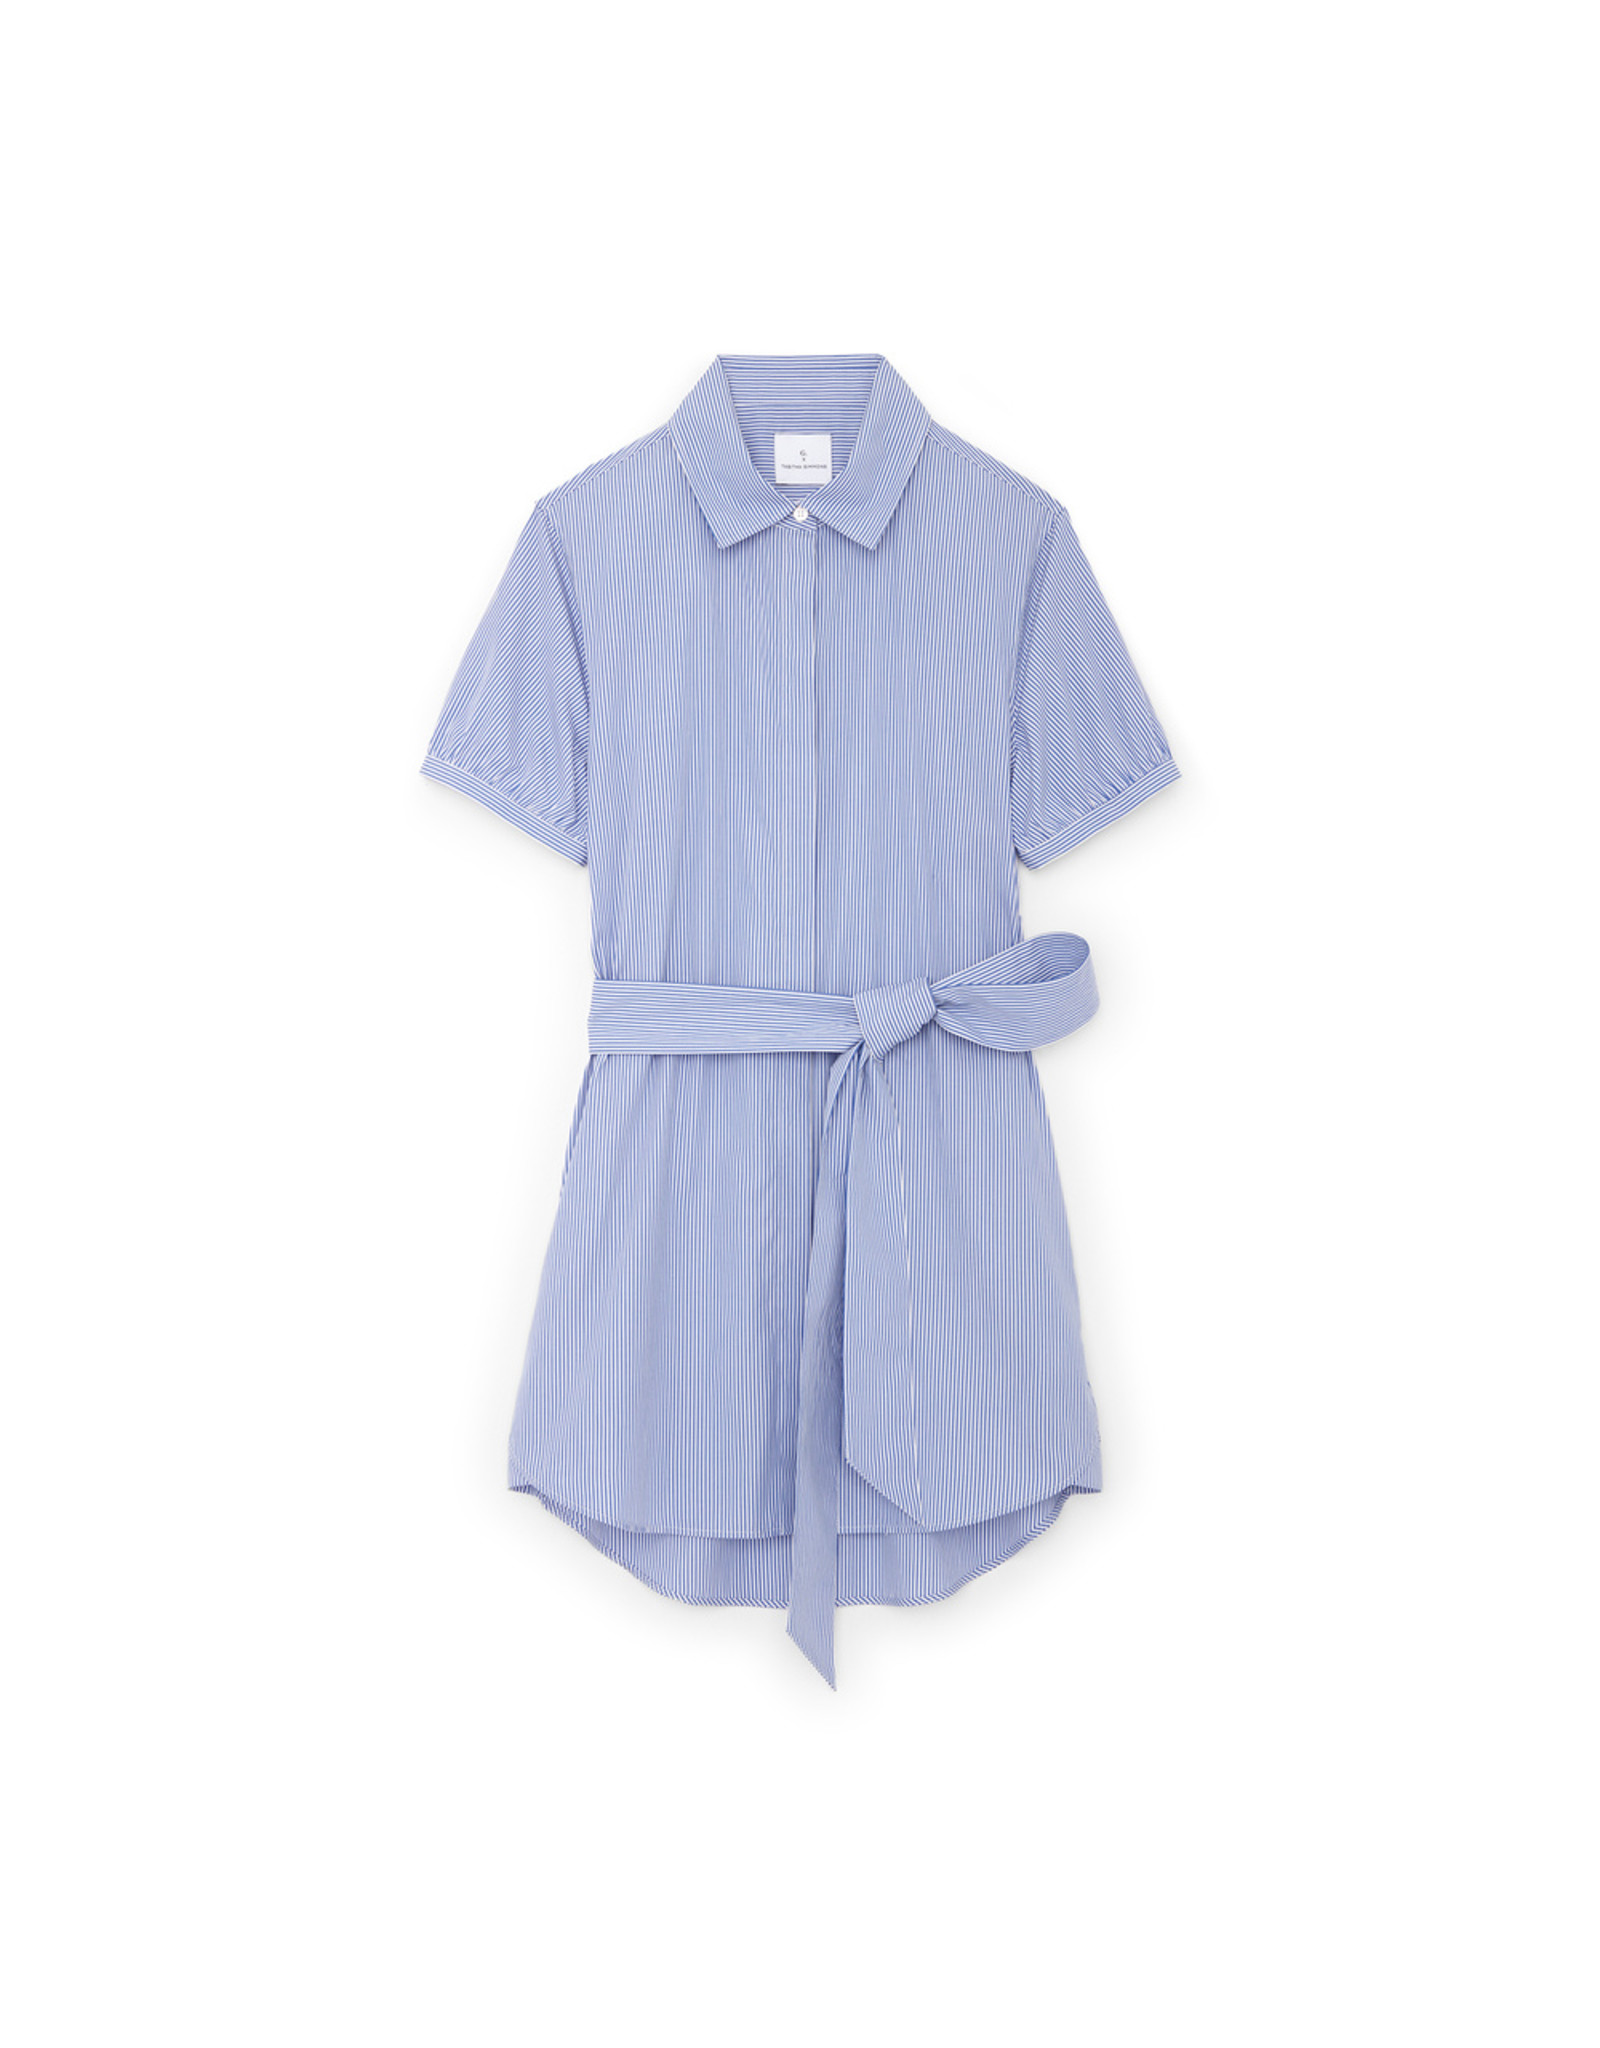 G. Label Cusco Mini Shirt Dress (color: Blue & White Stripe, Size: L)